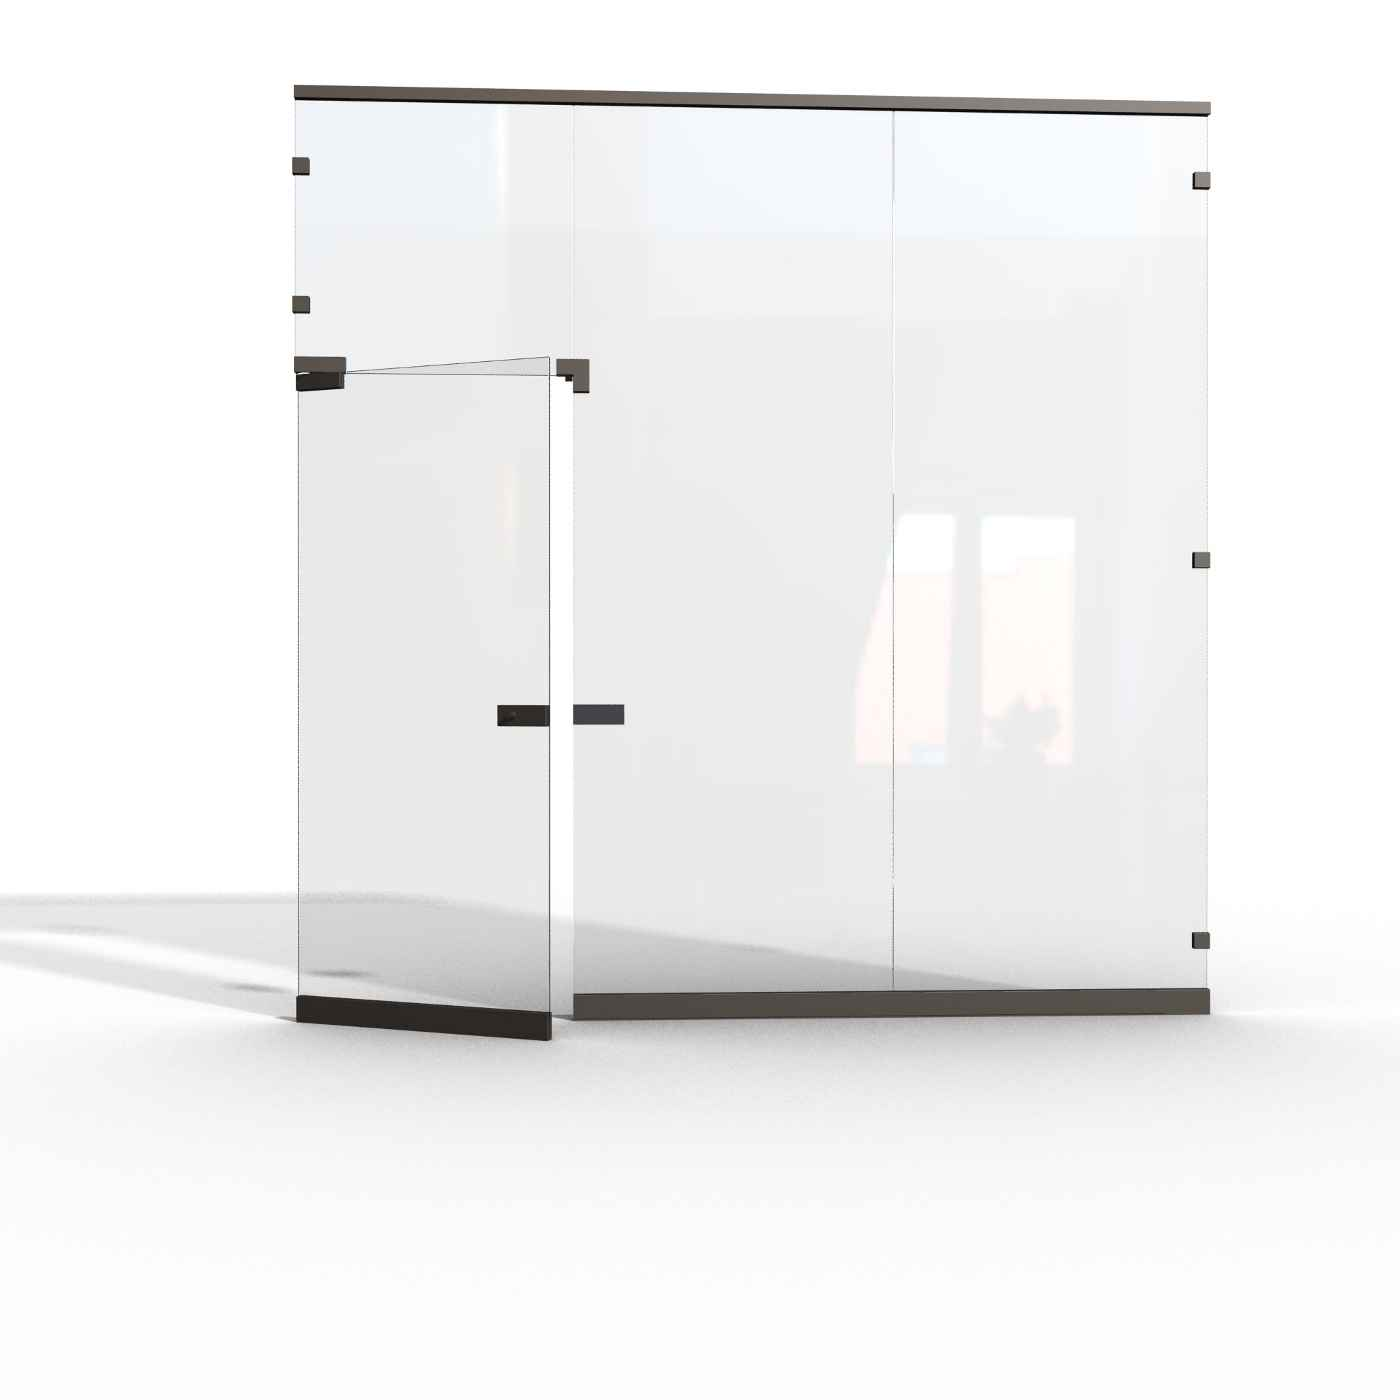 Making your working space unique and enjoyable with office cubicle glass walls